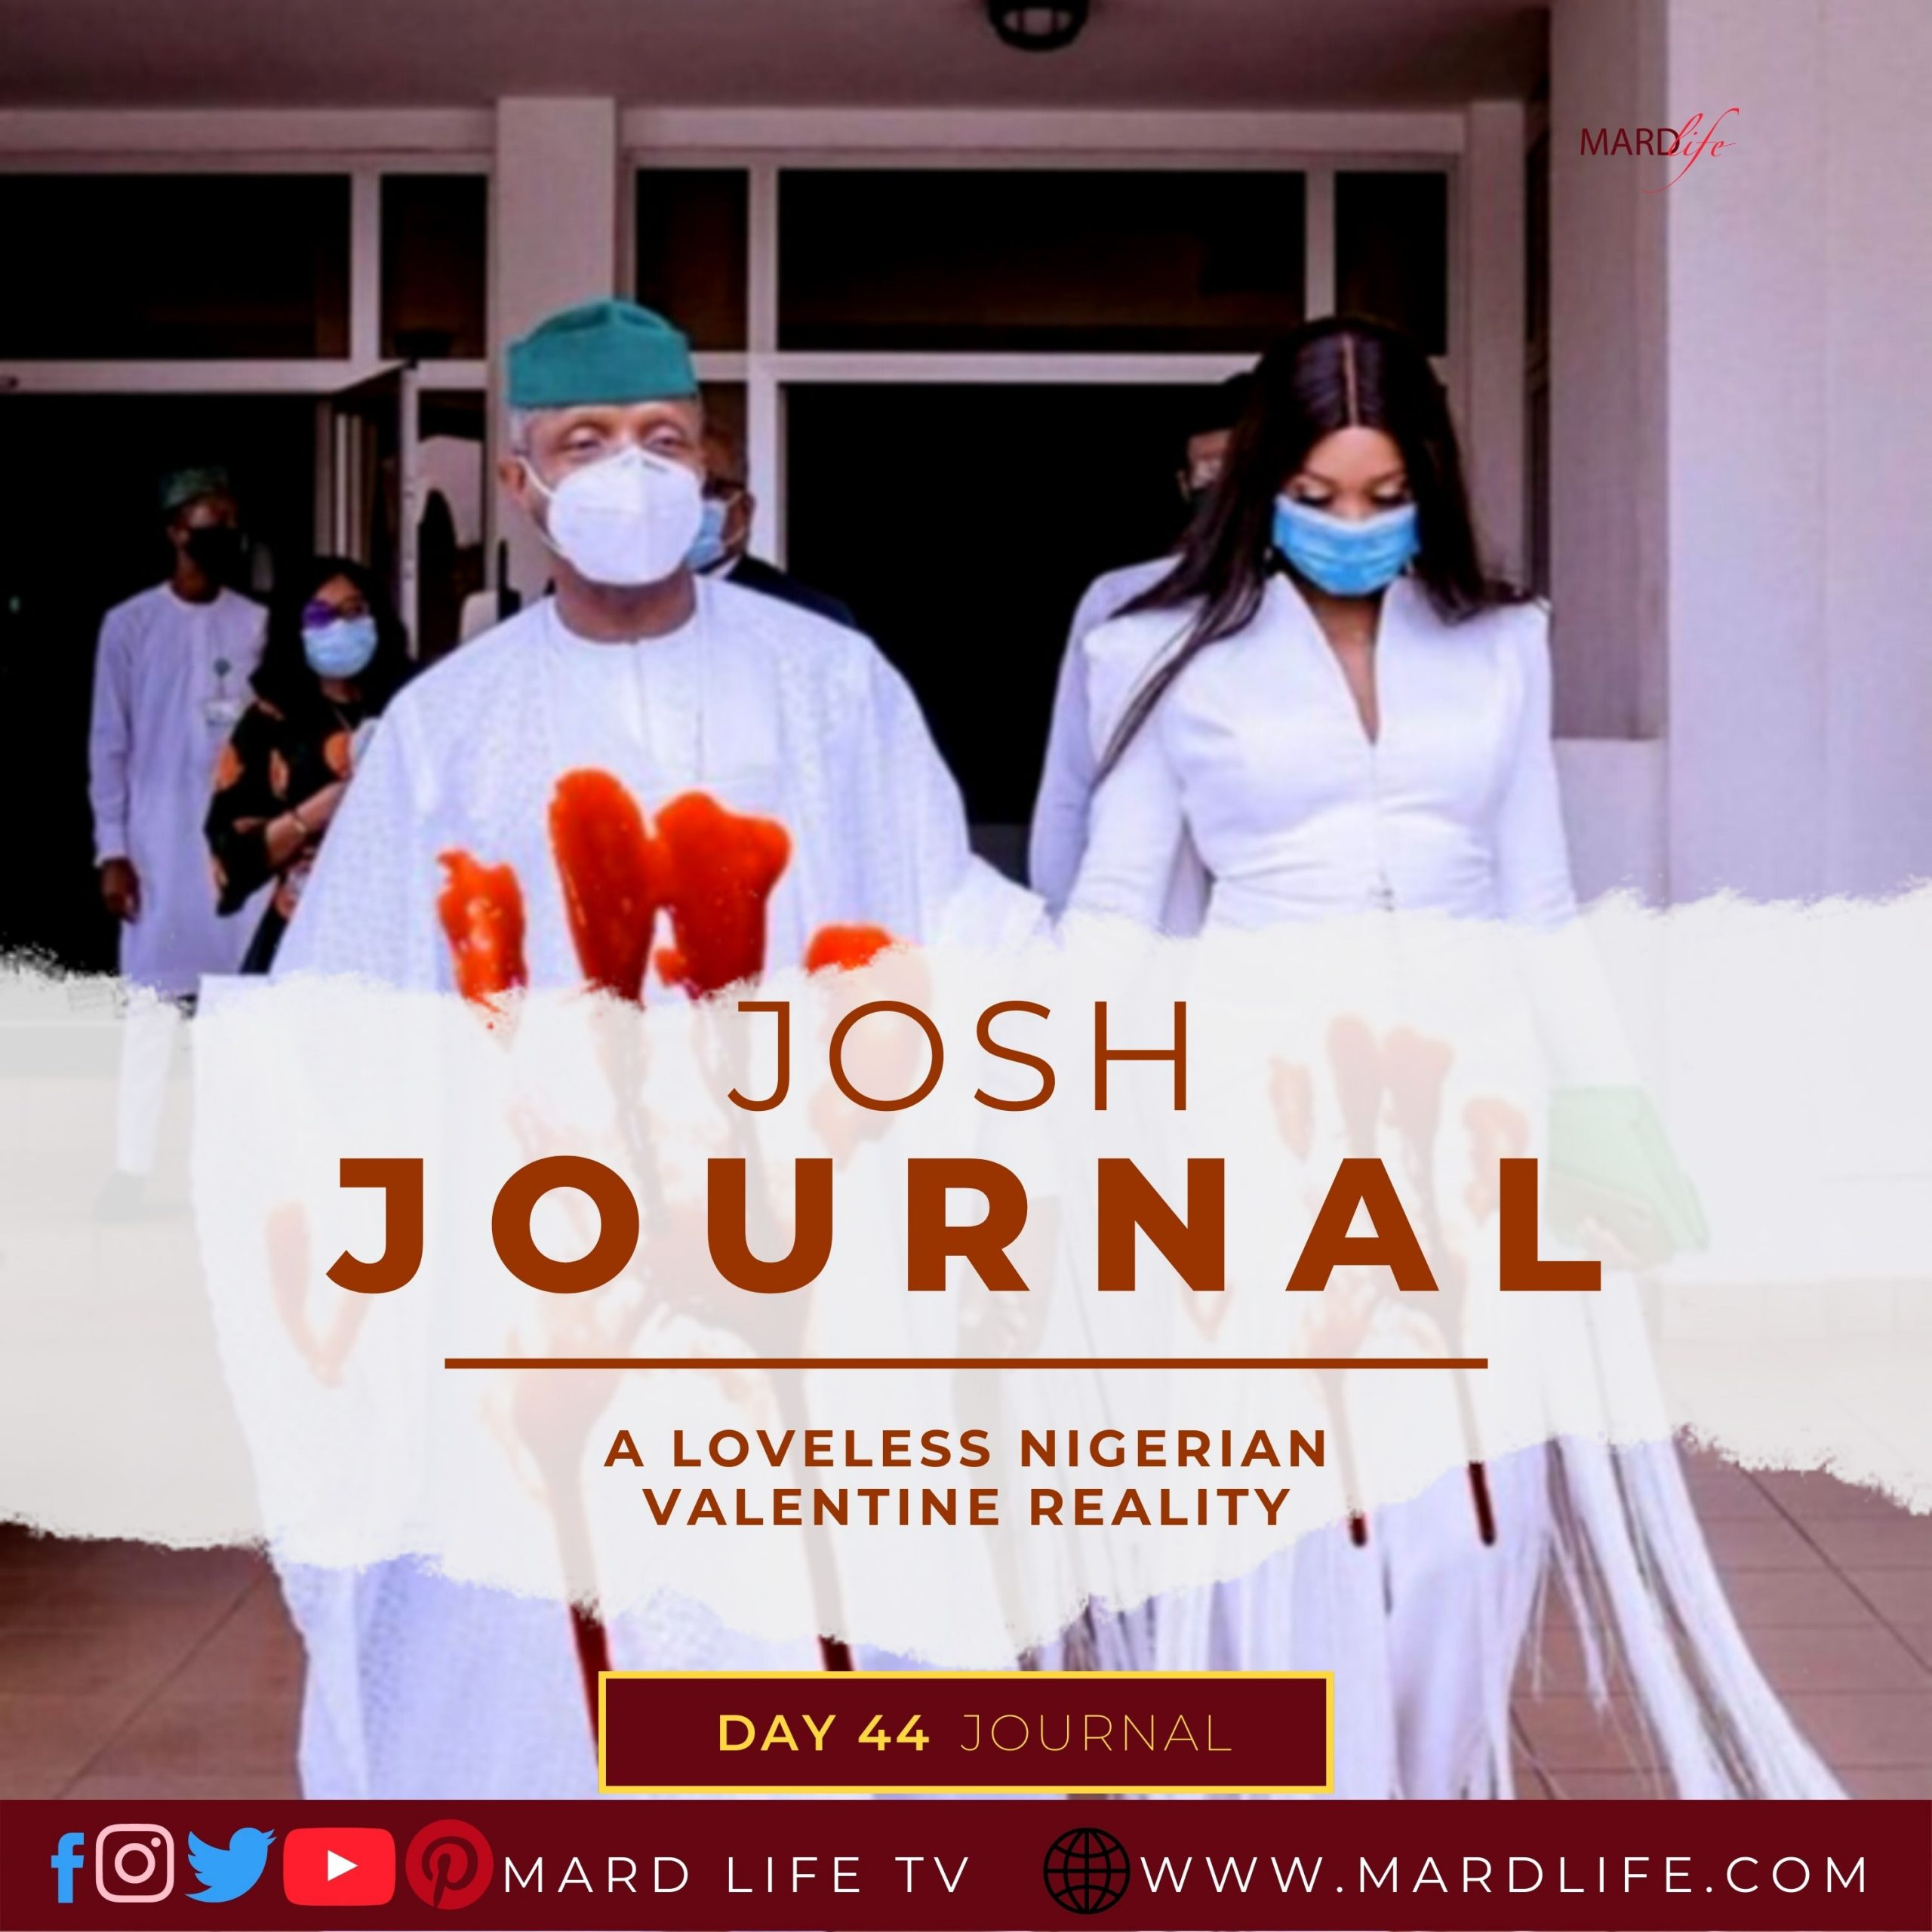 A Loveless Nigerian Valentine Reality – Josh Journal